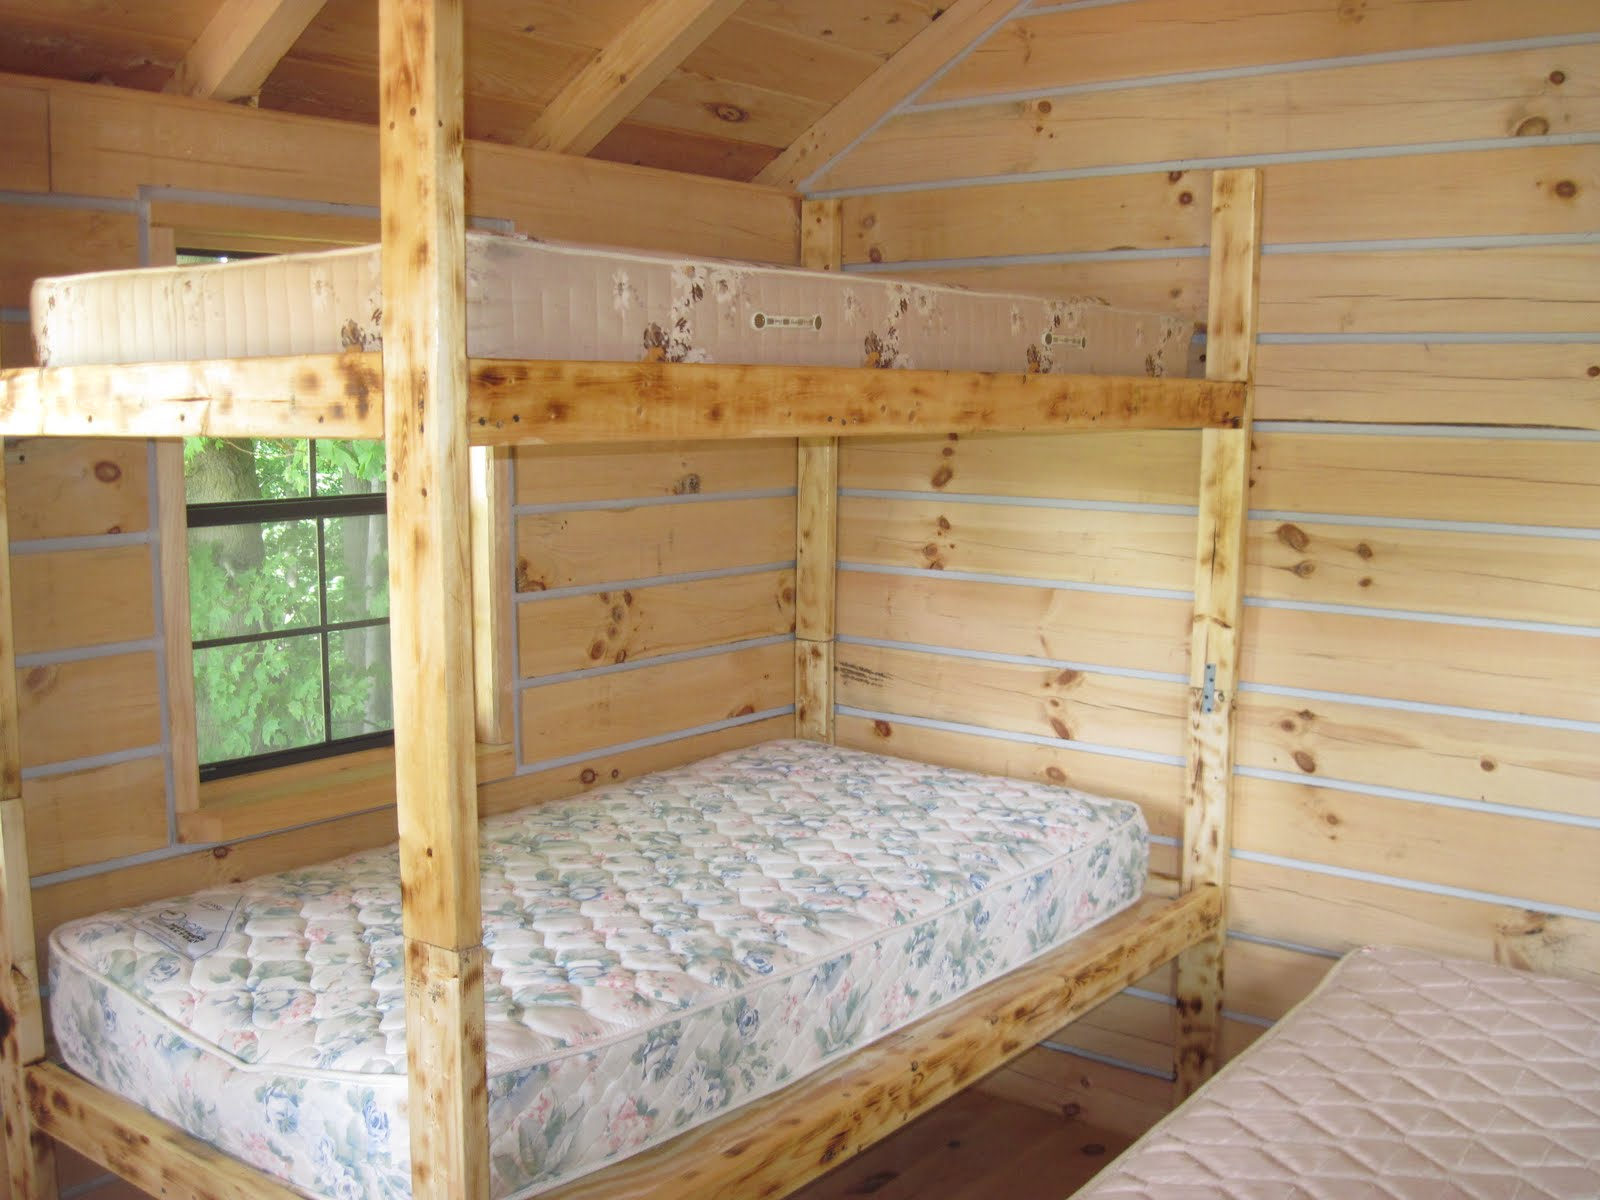 Pdf diy bunk bed plans queen download built in bookshelves for Bunk bed woodworking plans